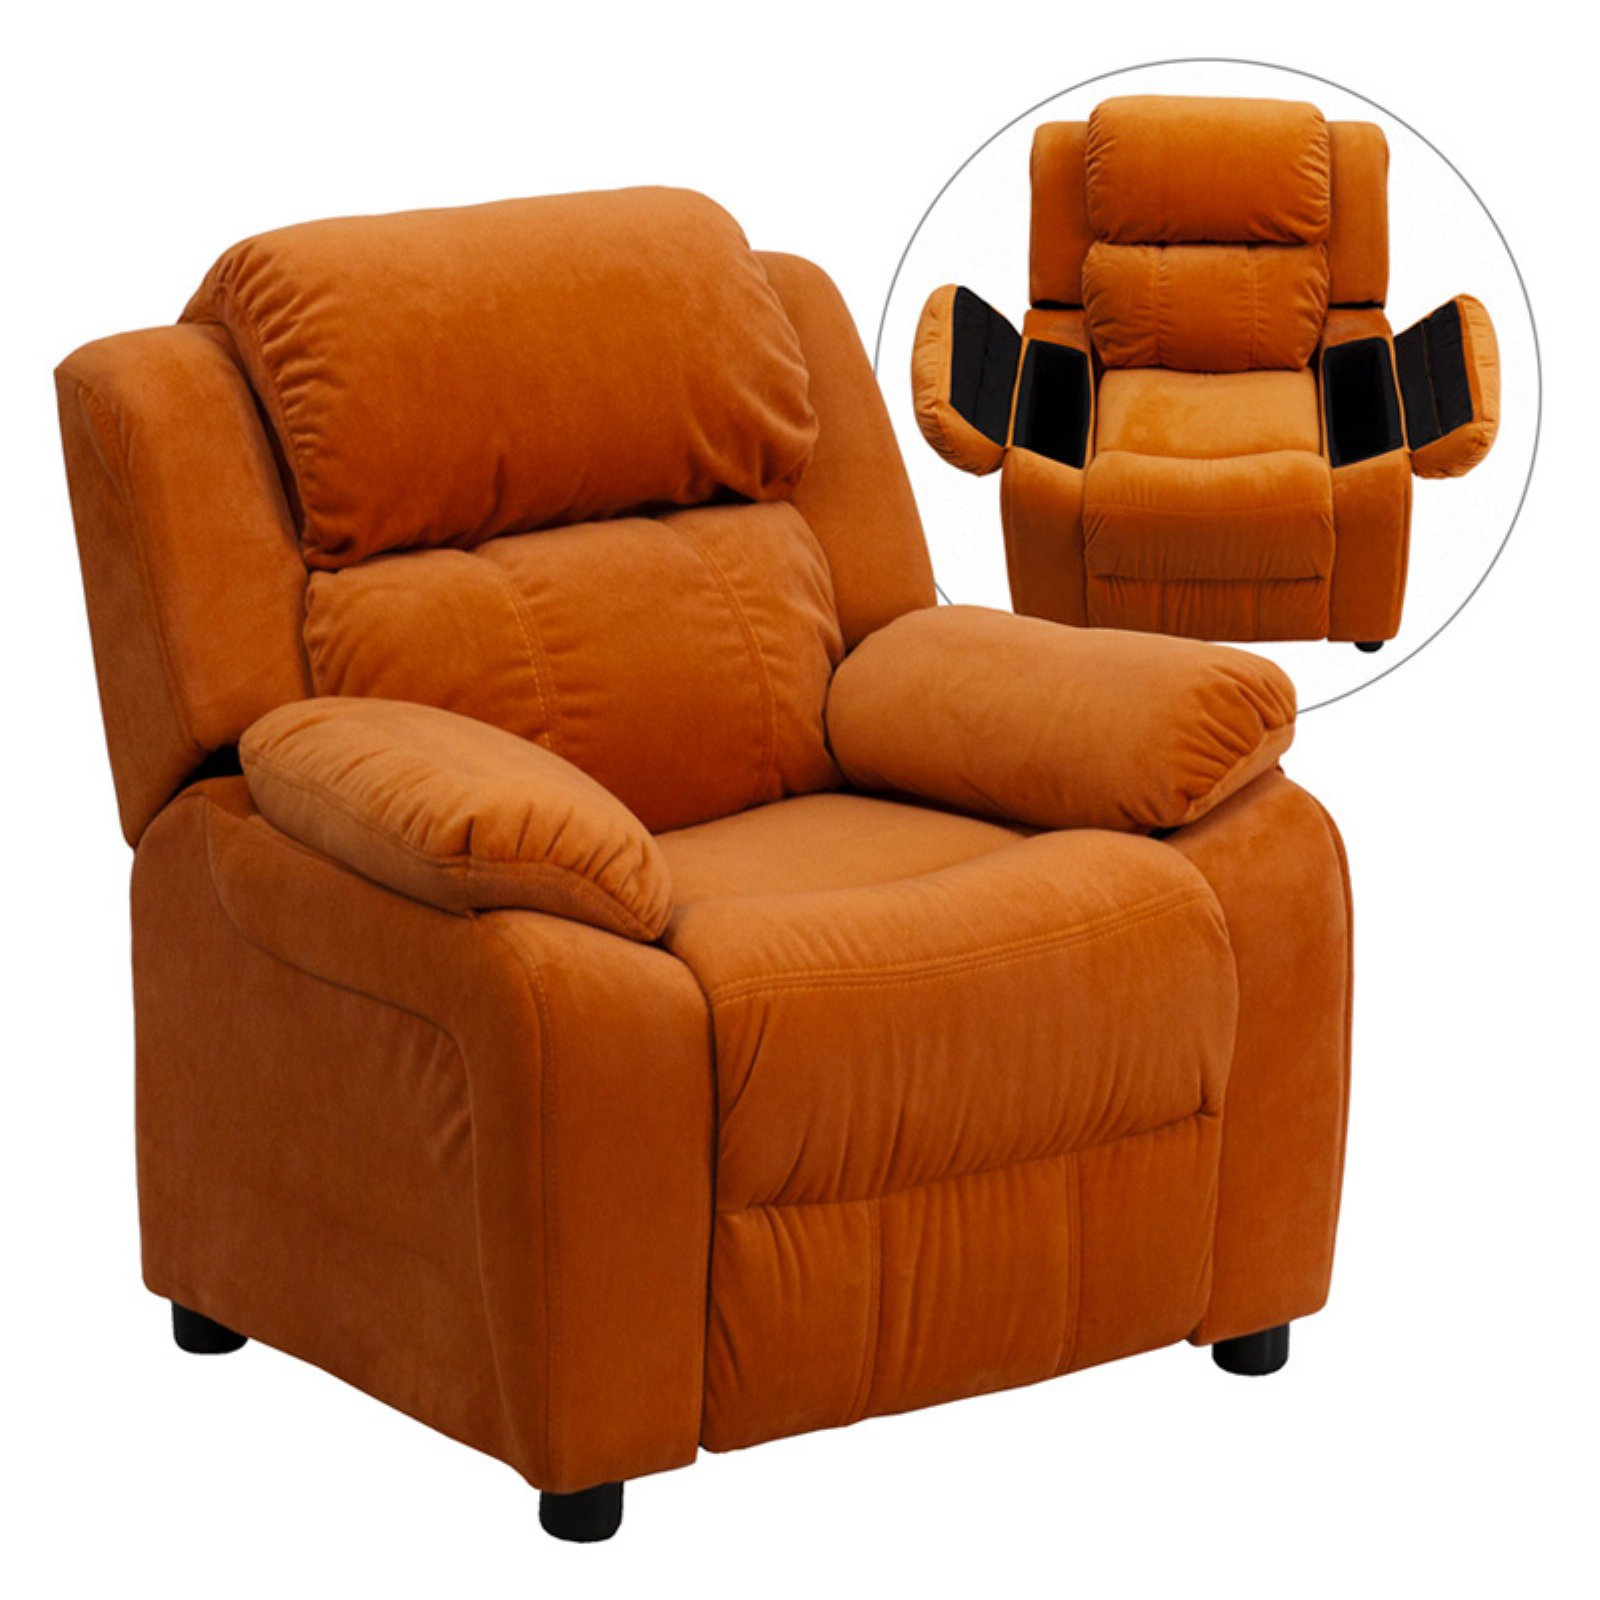 Flash Furniture Kids' Microfiber Recliner with Storage Arms, Multiple Colors